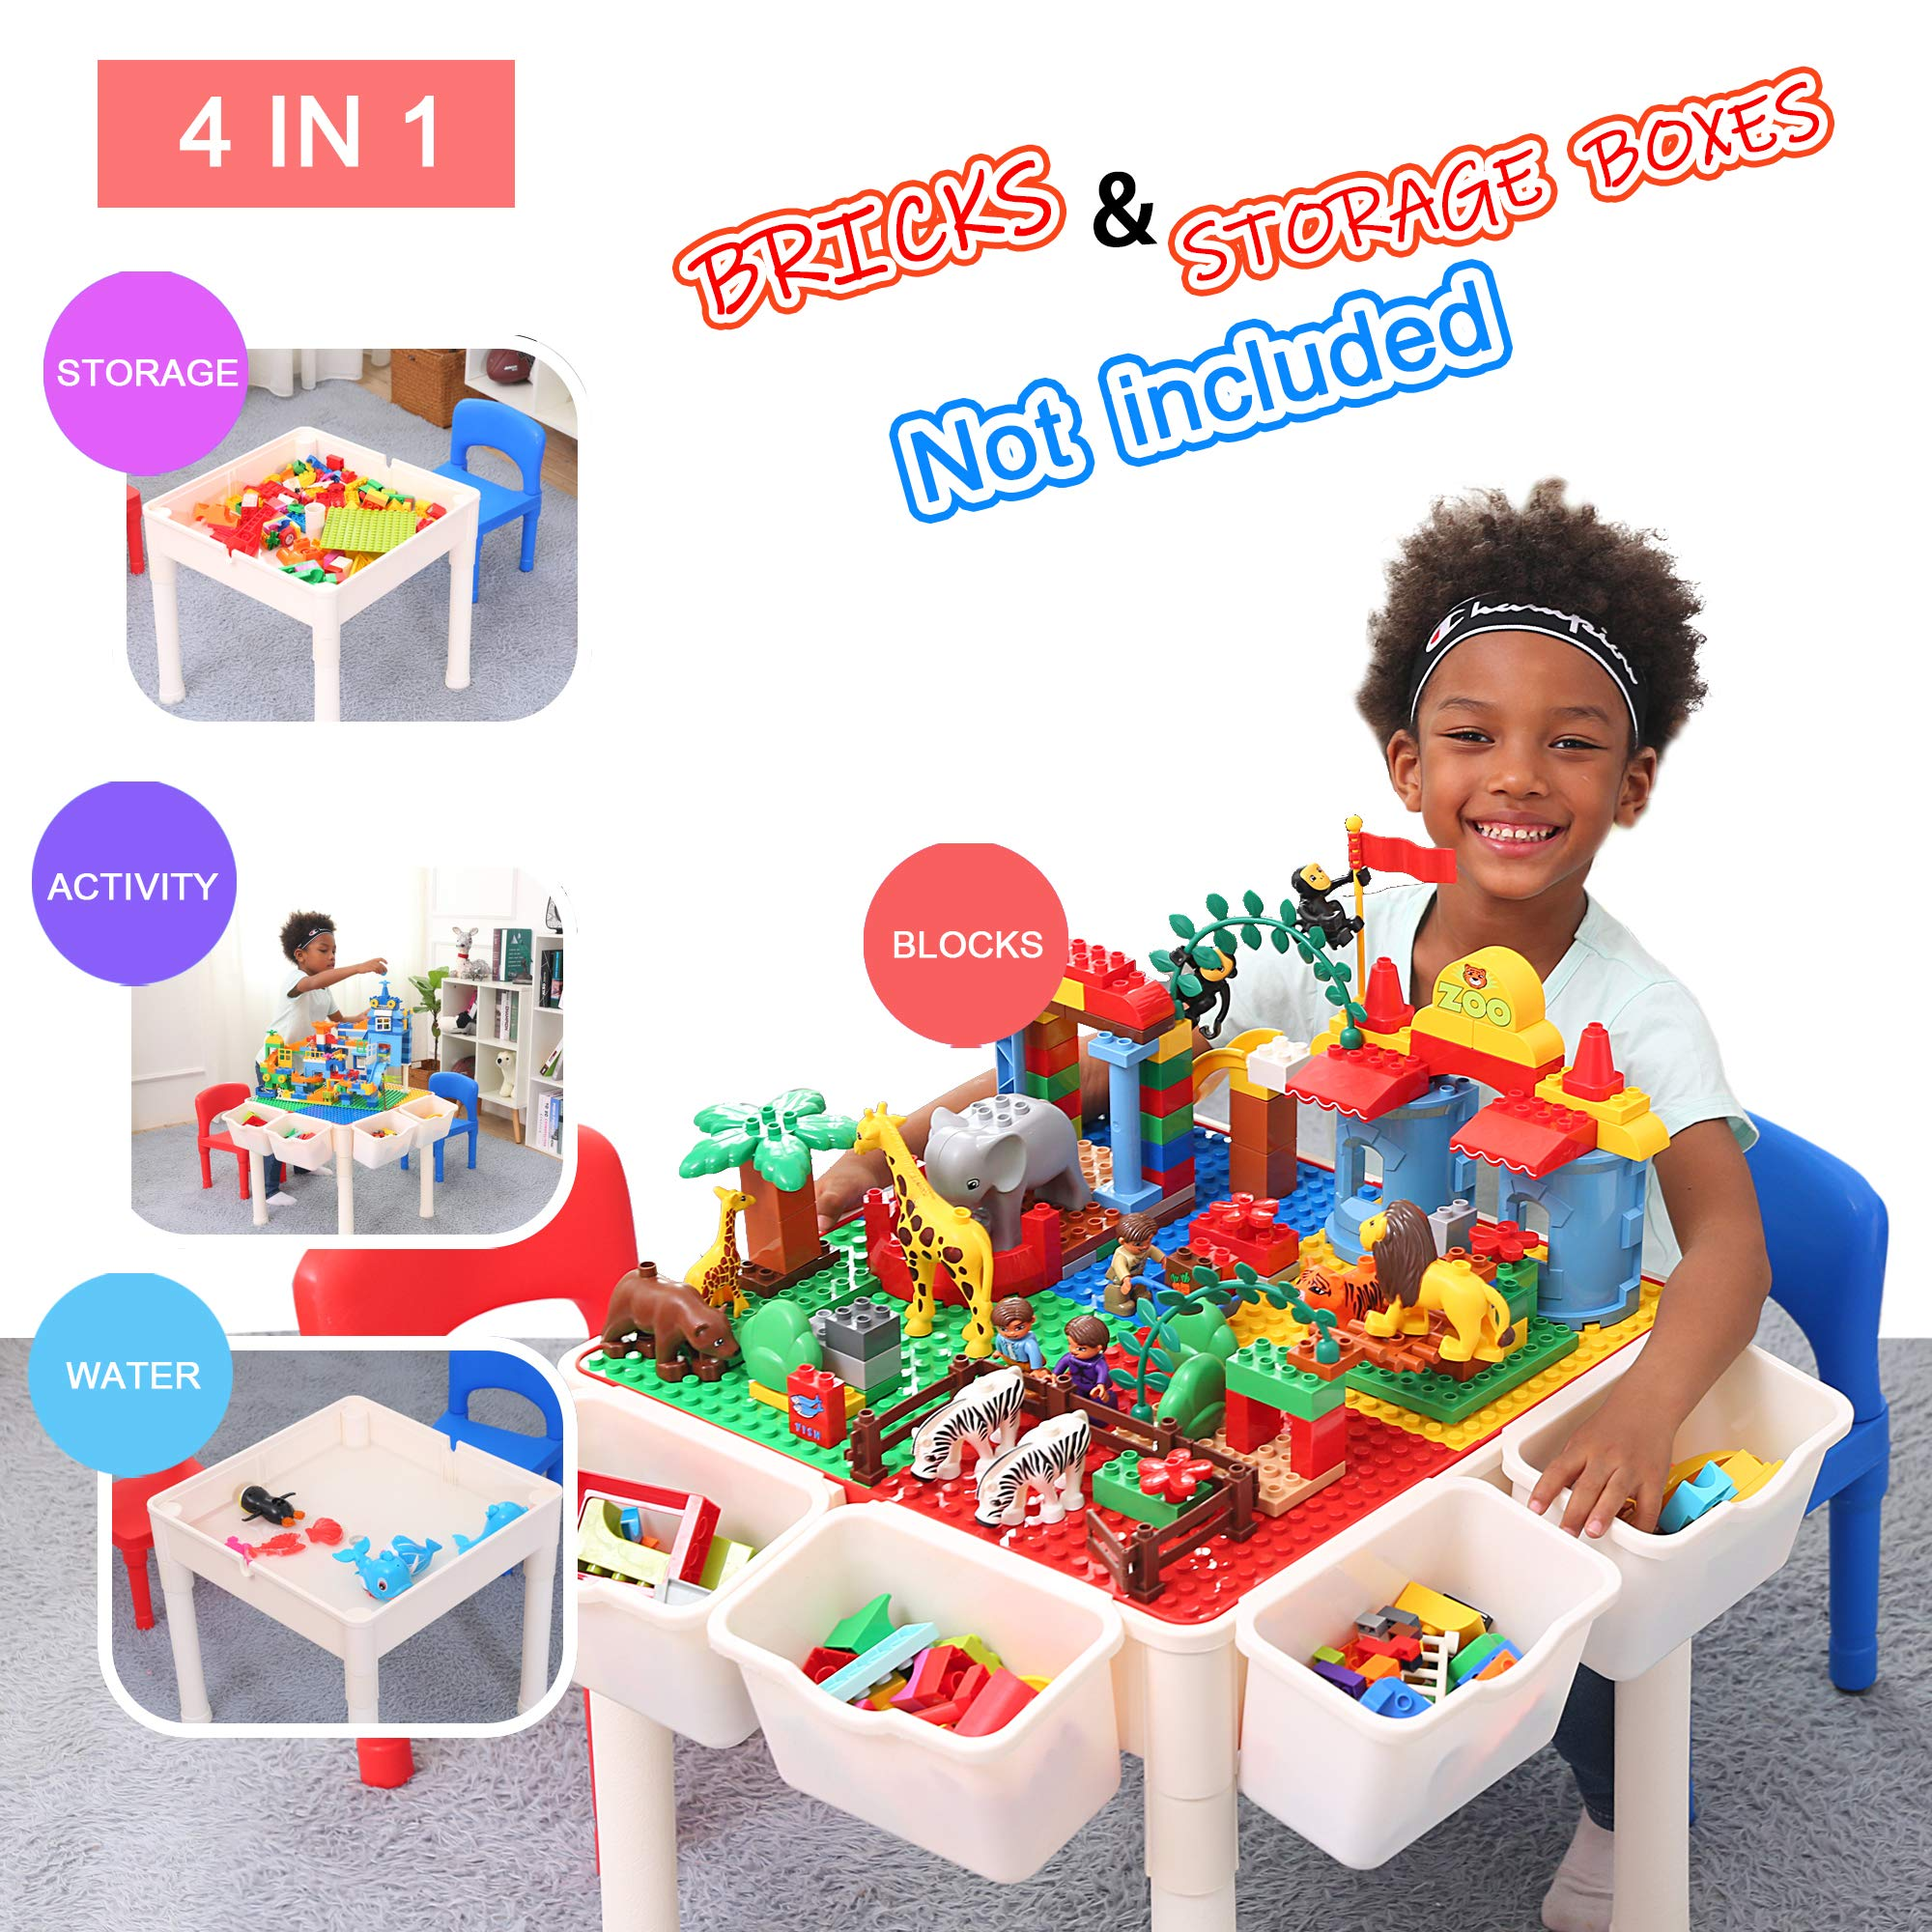 Bheddi Kids Table and Chair Set, 4 in 1 Toddler Table and Chair Sets, Kids Activity Table Blocks Craft Play Table Fits Educational Playing Activities (Bricks Not Included)、 by Bheddi